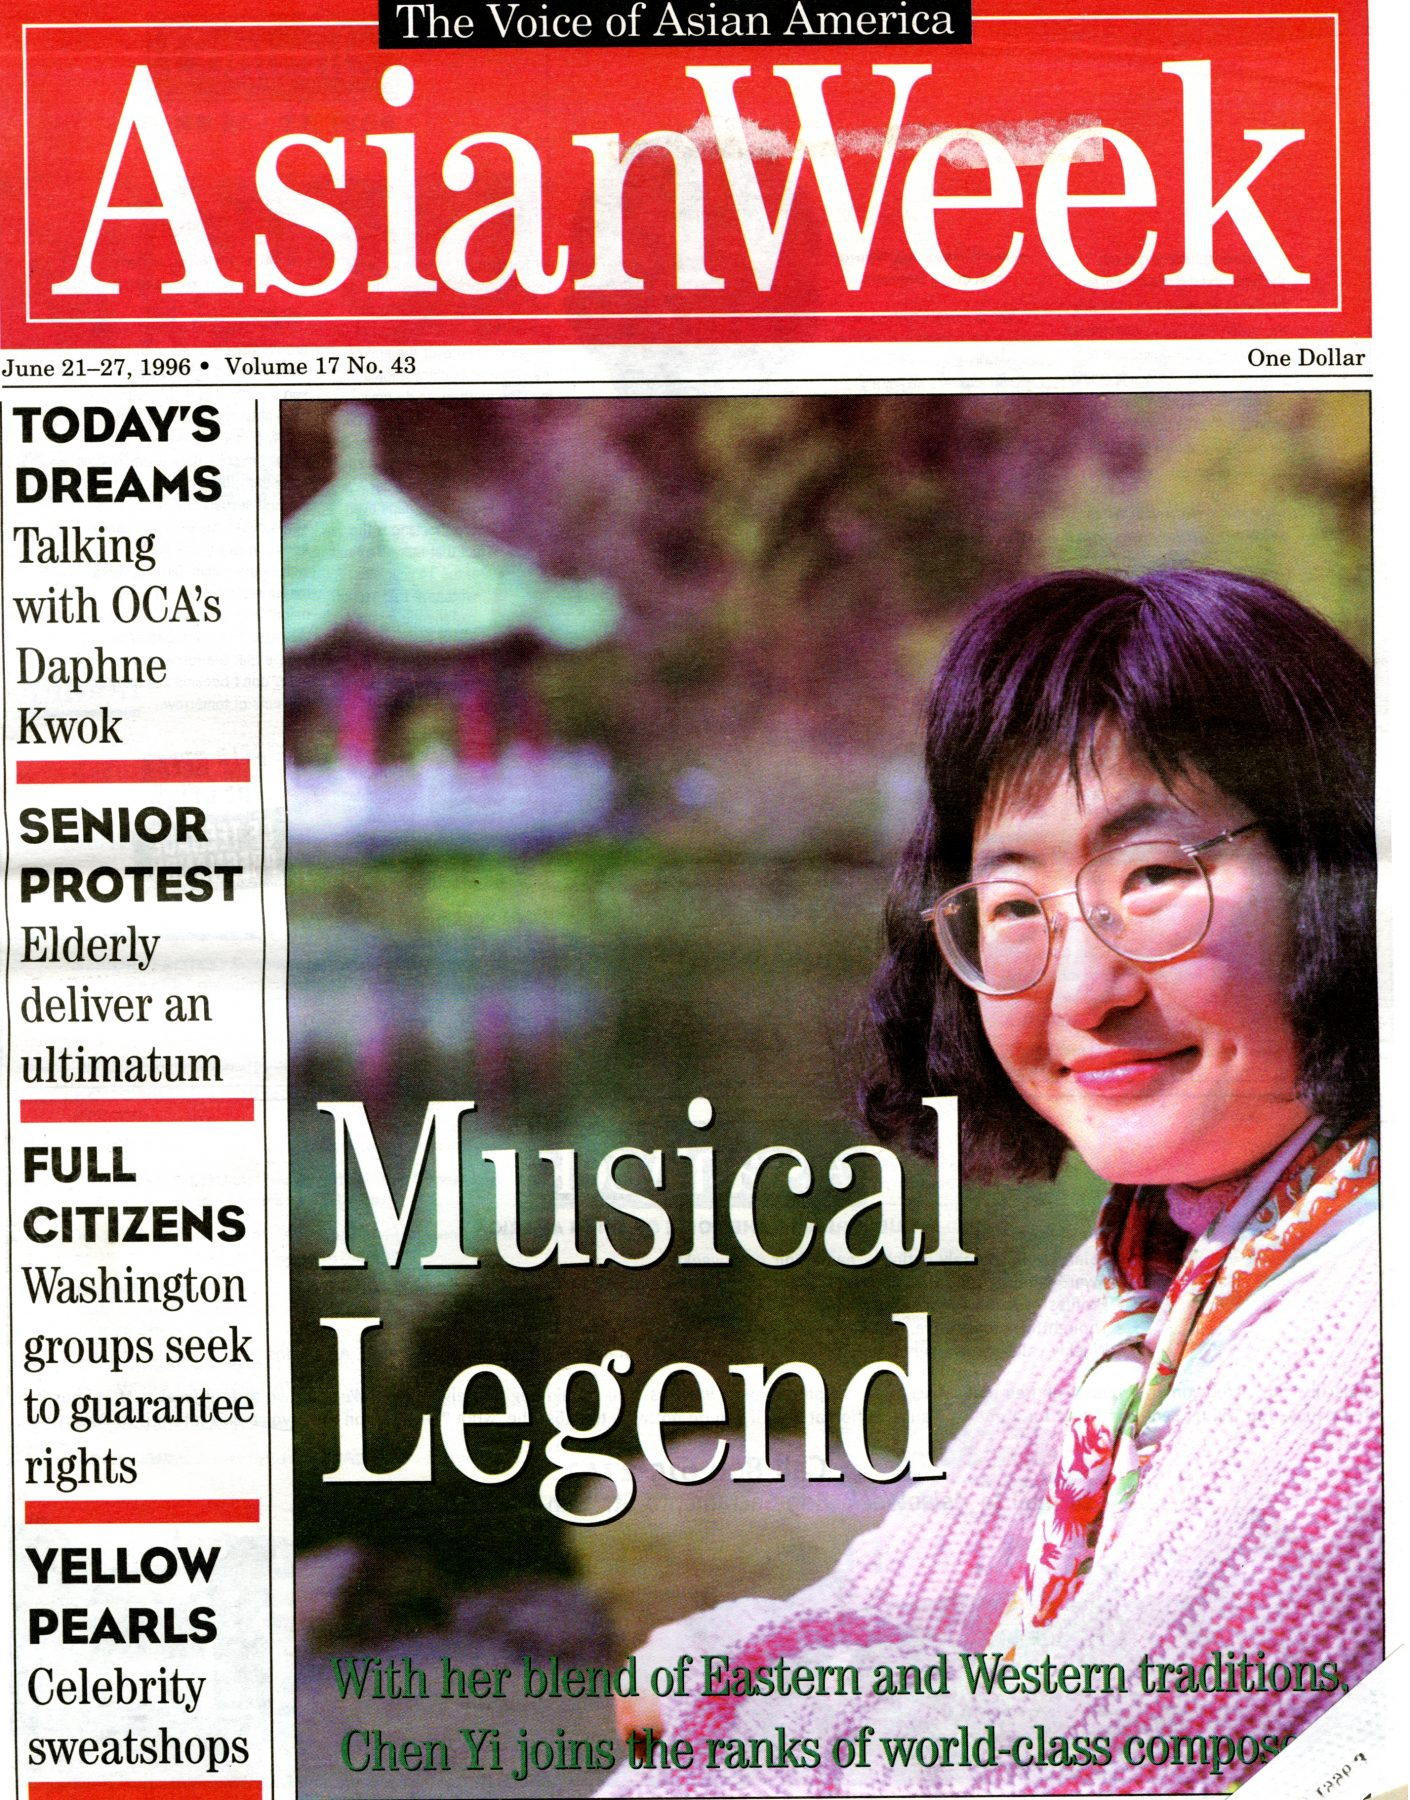 29 May 2019 Posted. Chen Yi on AsianWeek Cover, 1996, Museum of Chinese in America (MOCA) Collection. 陈怡登上1996年AsianWeek杂志封面,美国华人博物馆(MOCA)馆藏